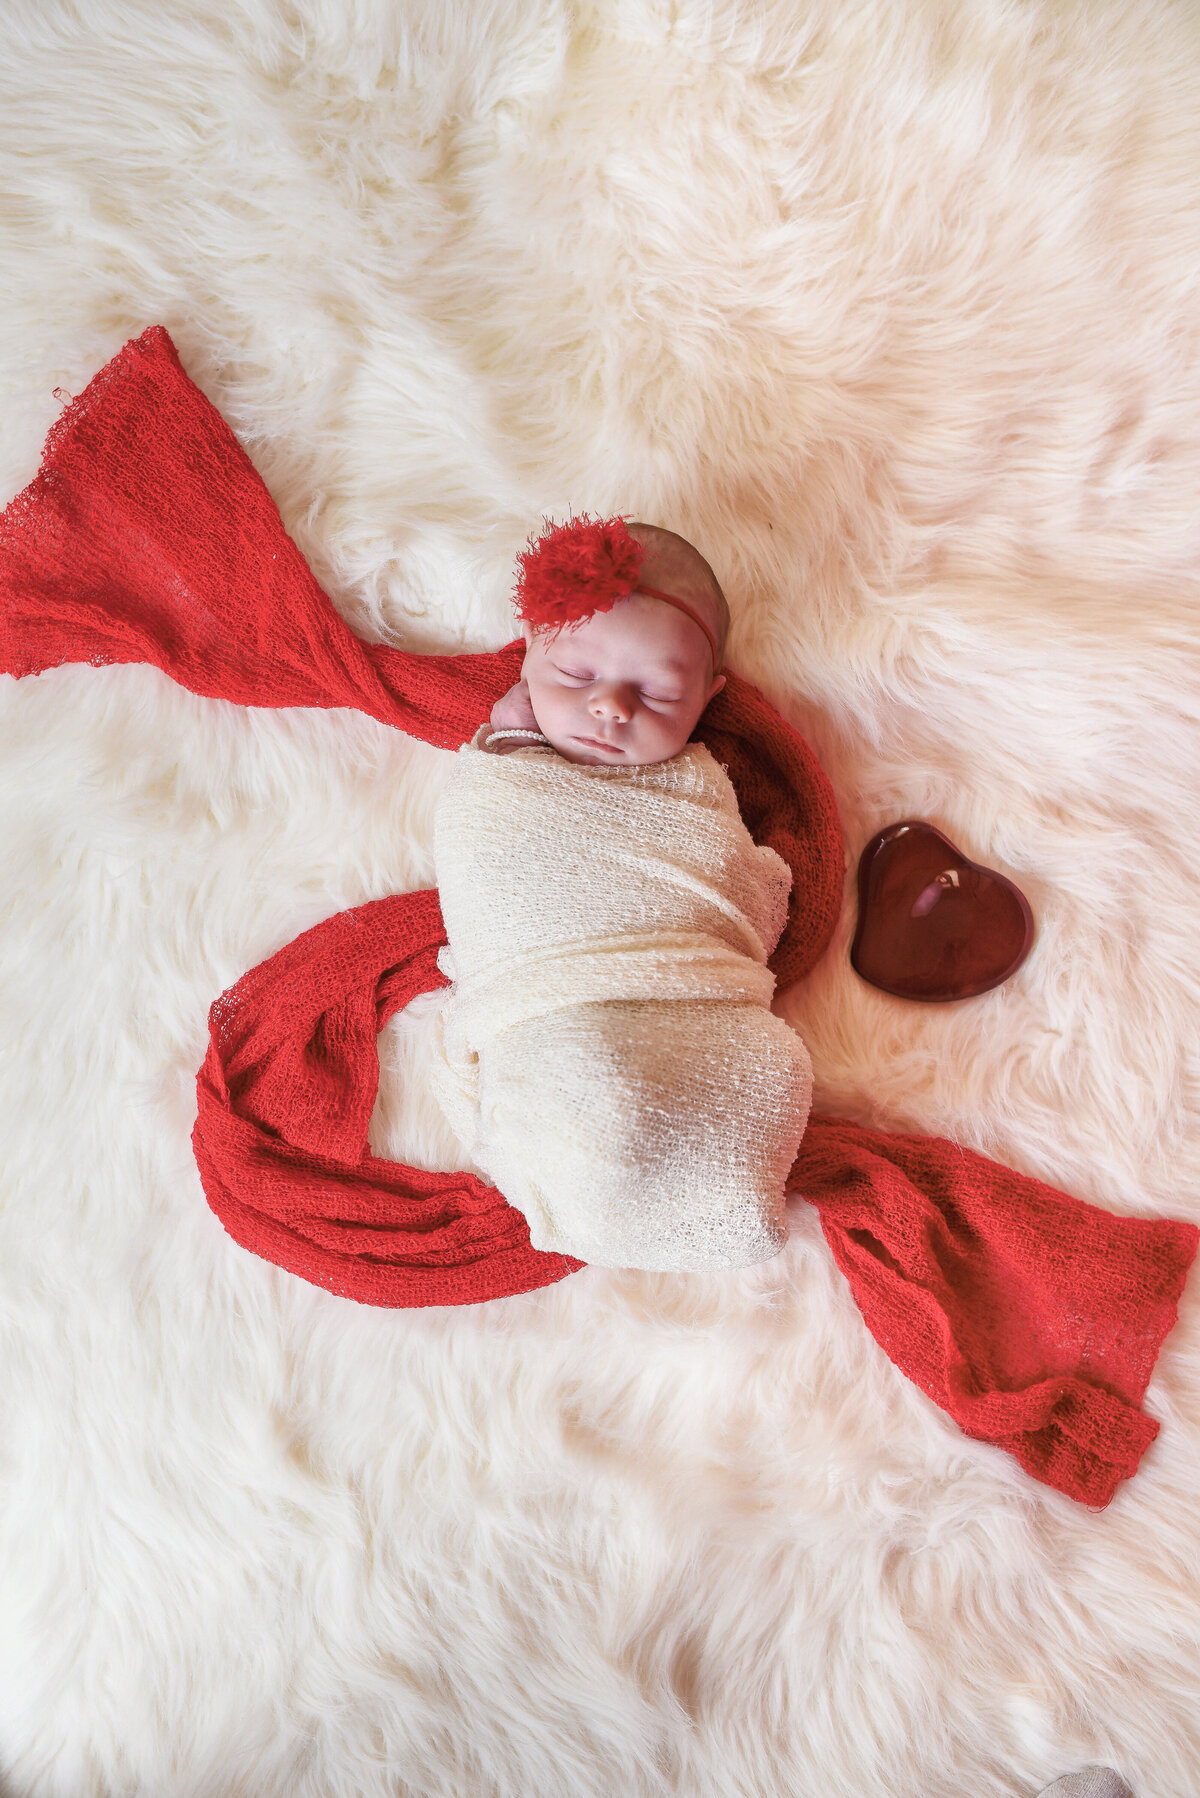 Beautiful Mississippi newborn photography: newborn girl red with a red glass Tiffany heart for Valentines in Mississippi